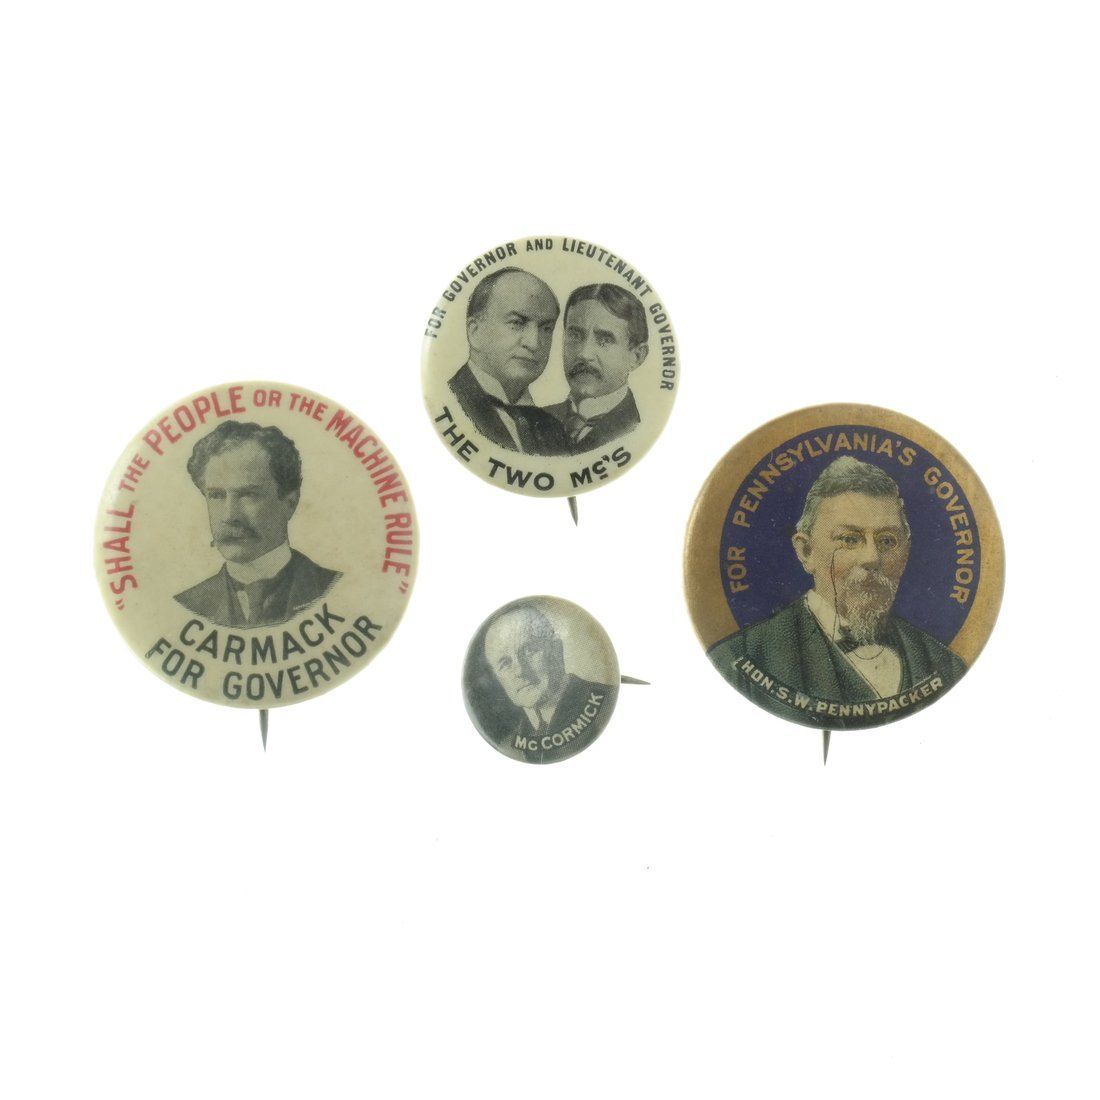 Assorted State and Local Buttons - 4